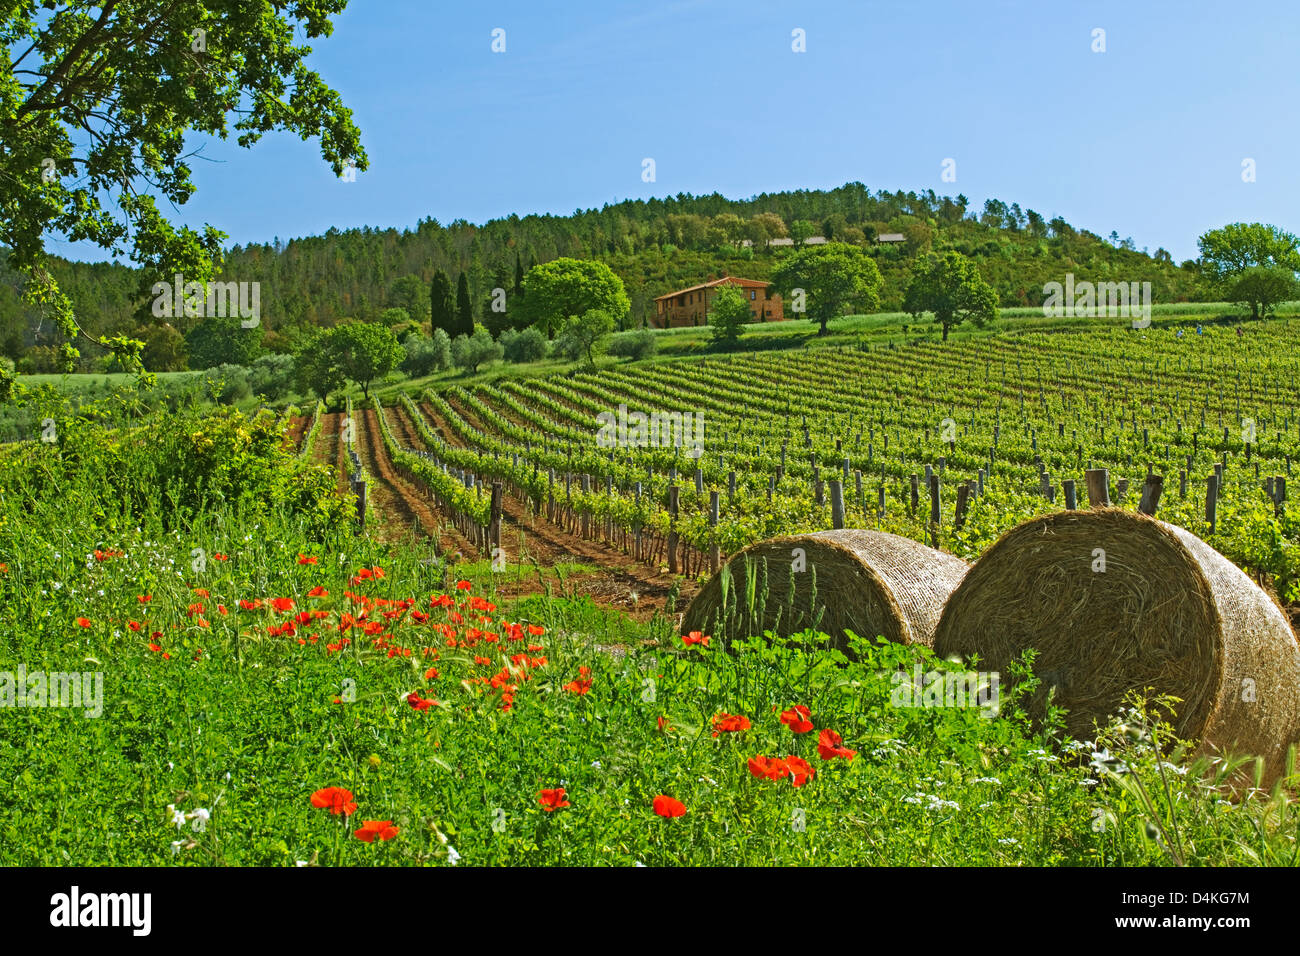 Tuscany - Vineyard with poppies, hay rolls and house, - Stock Image